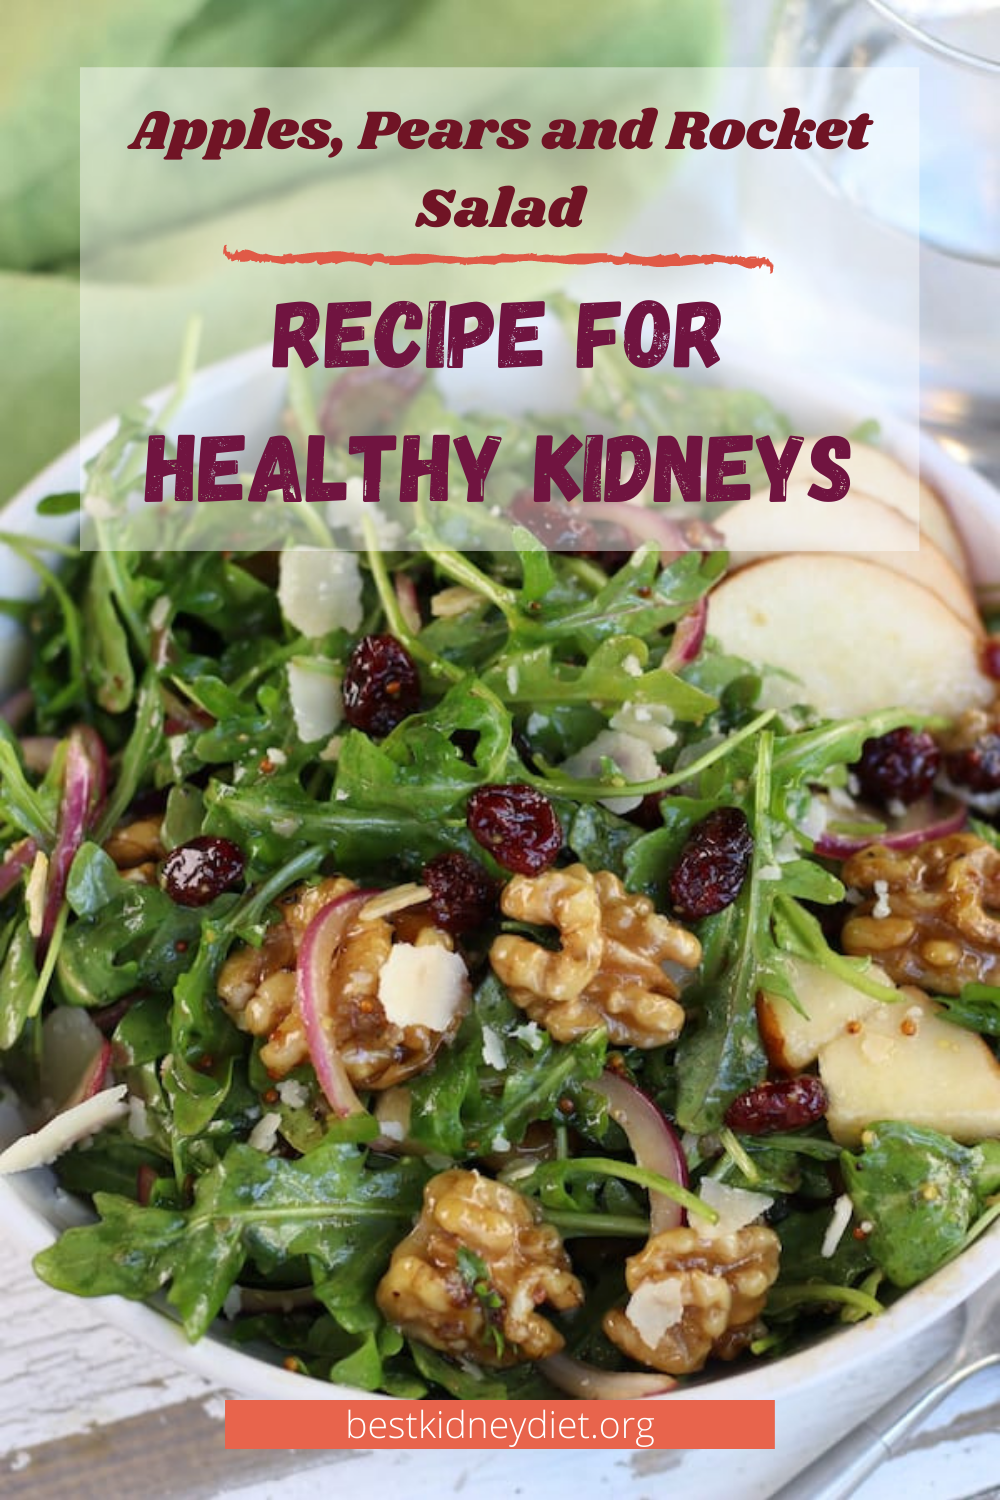 Apples, Pears and Rocket Salad